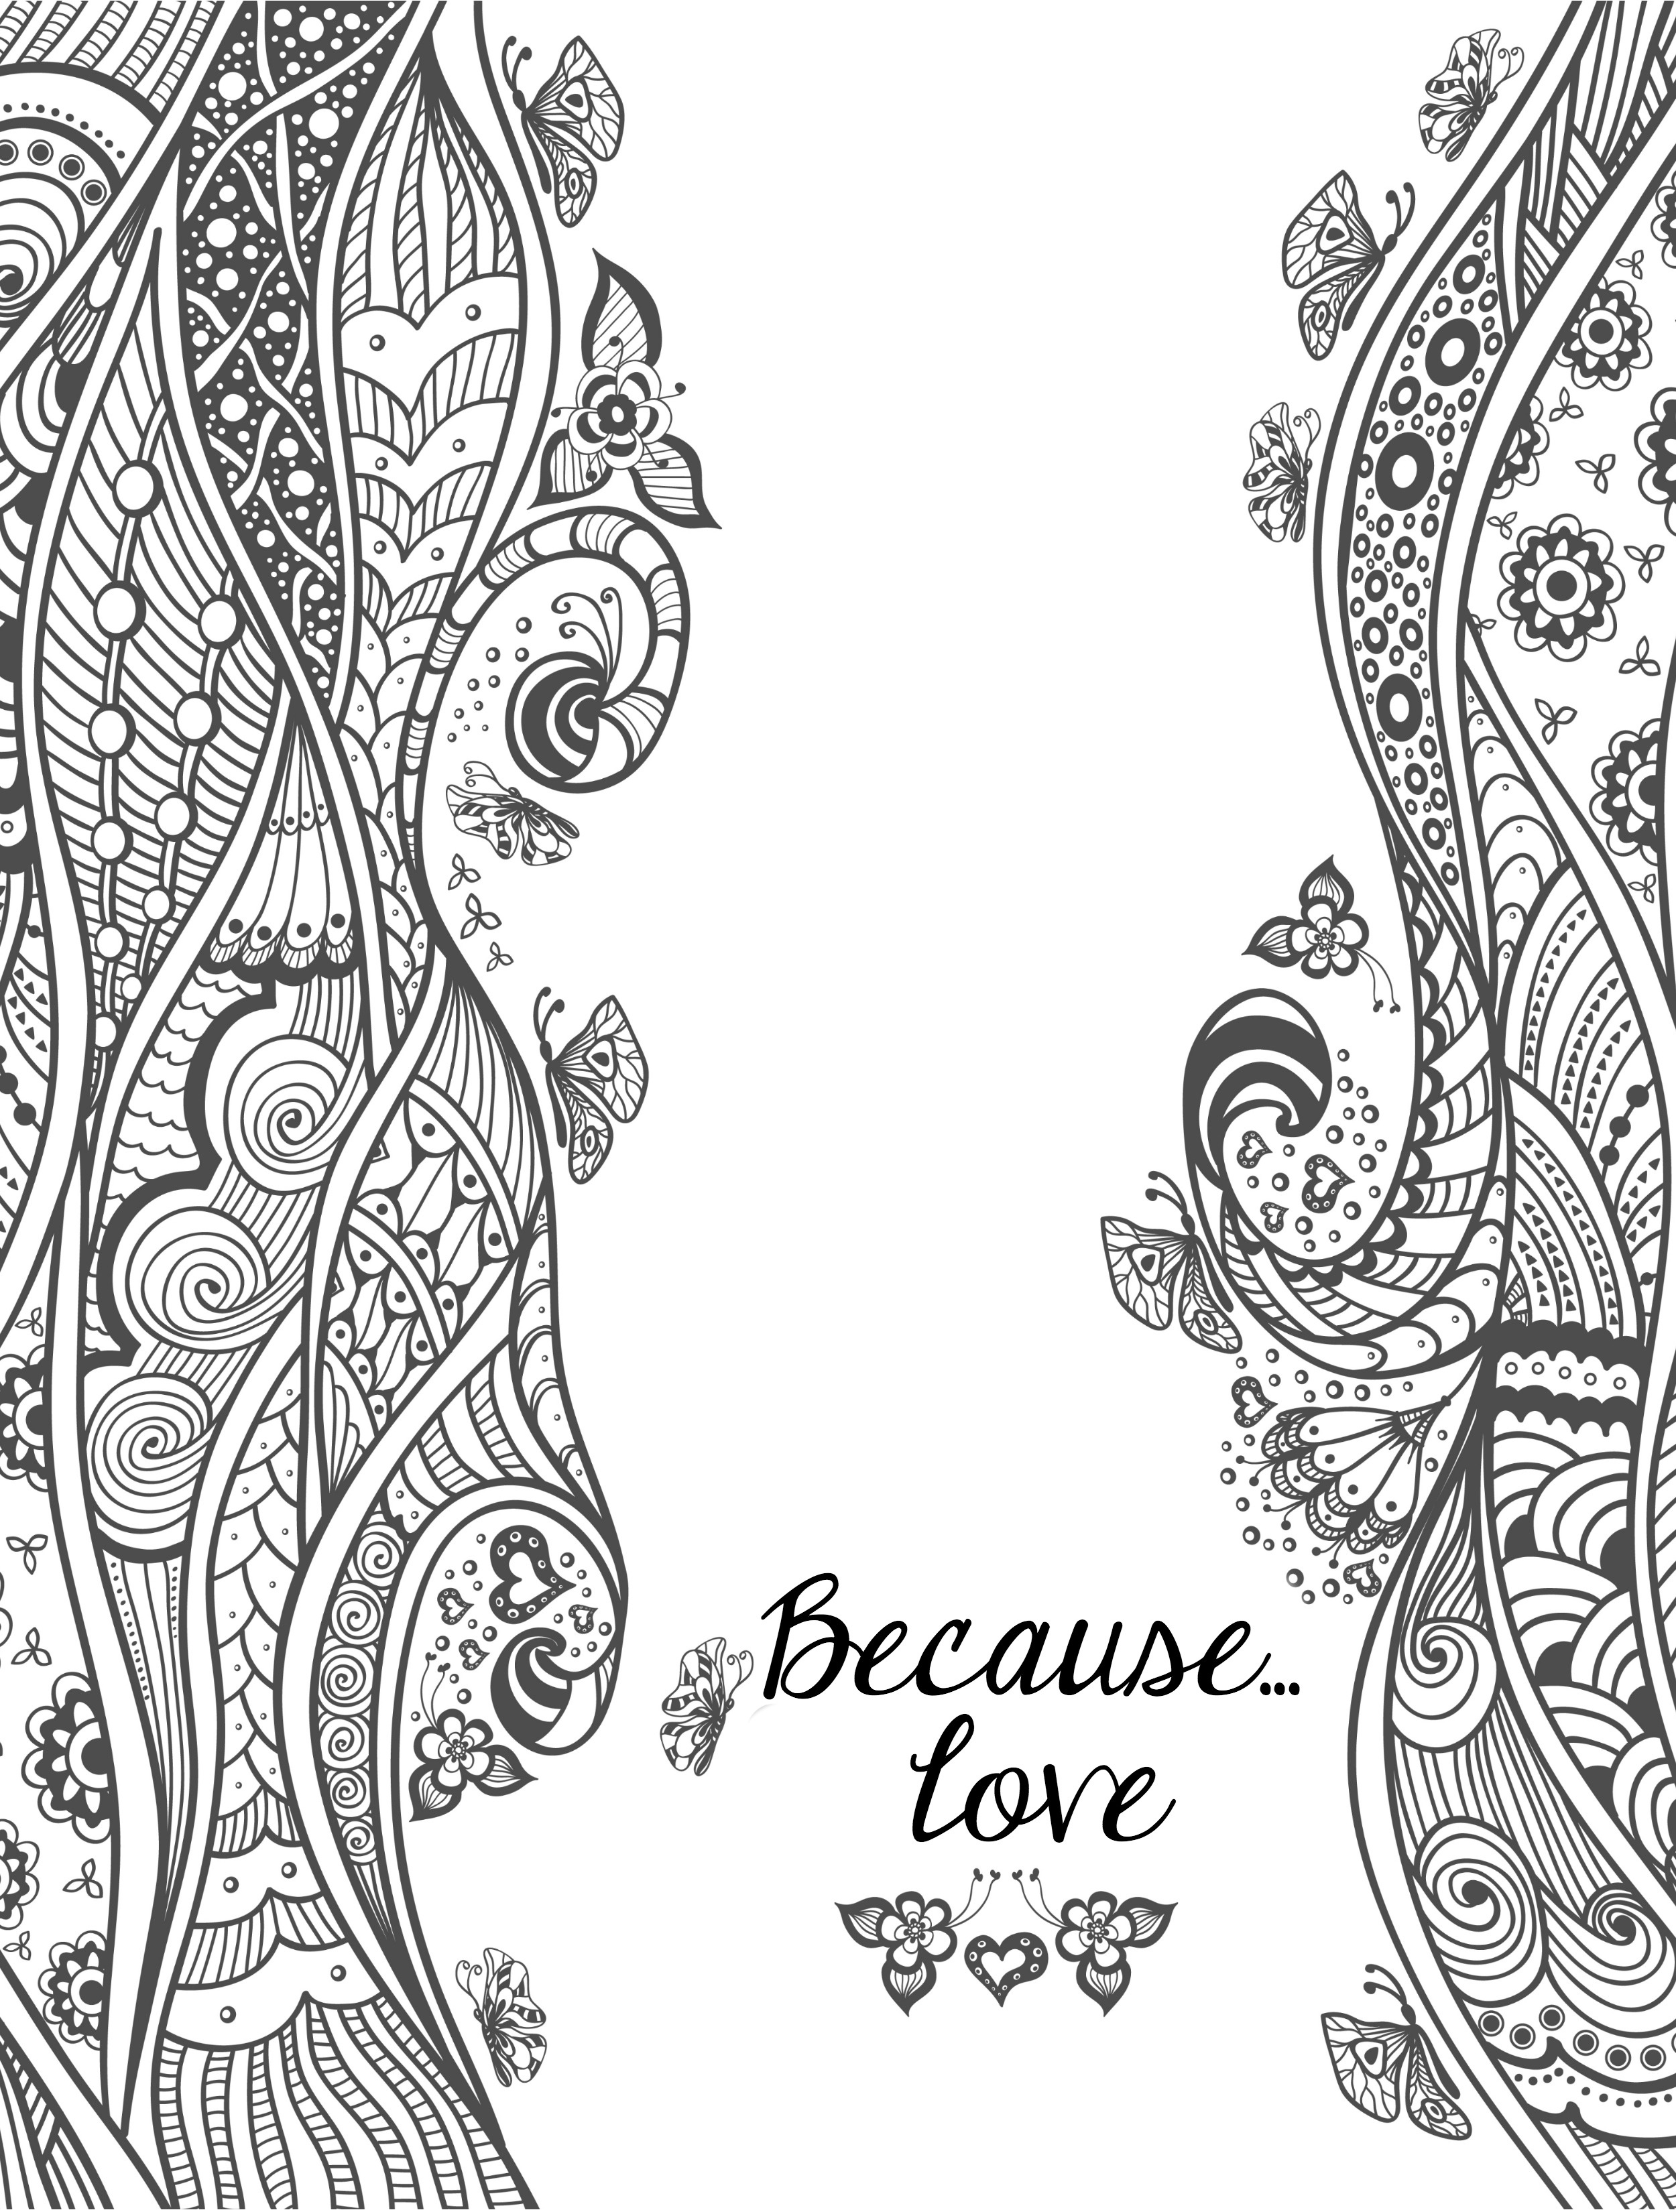 20 Free Printable Valentines Adult Coloring Pages - Nerdy Mamma - Free Printable Coloring Cards For Adults